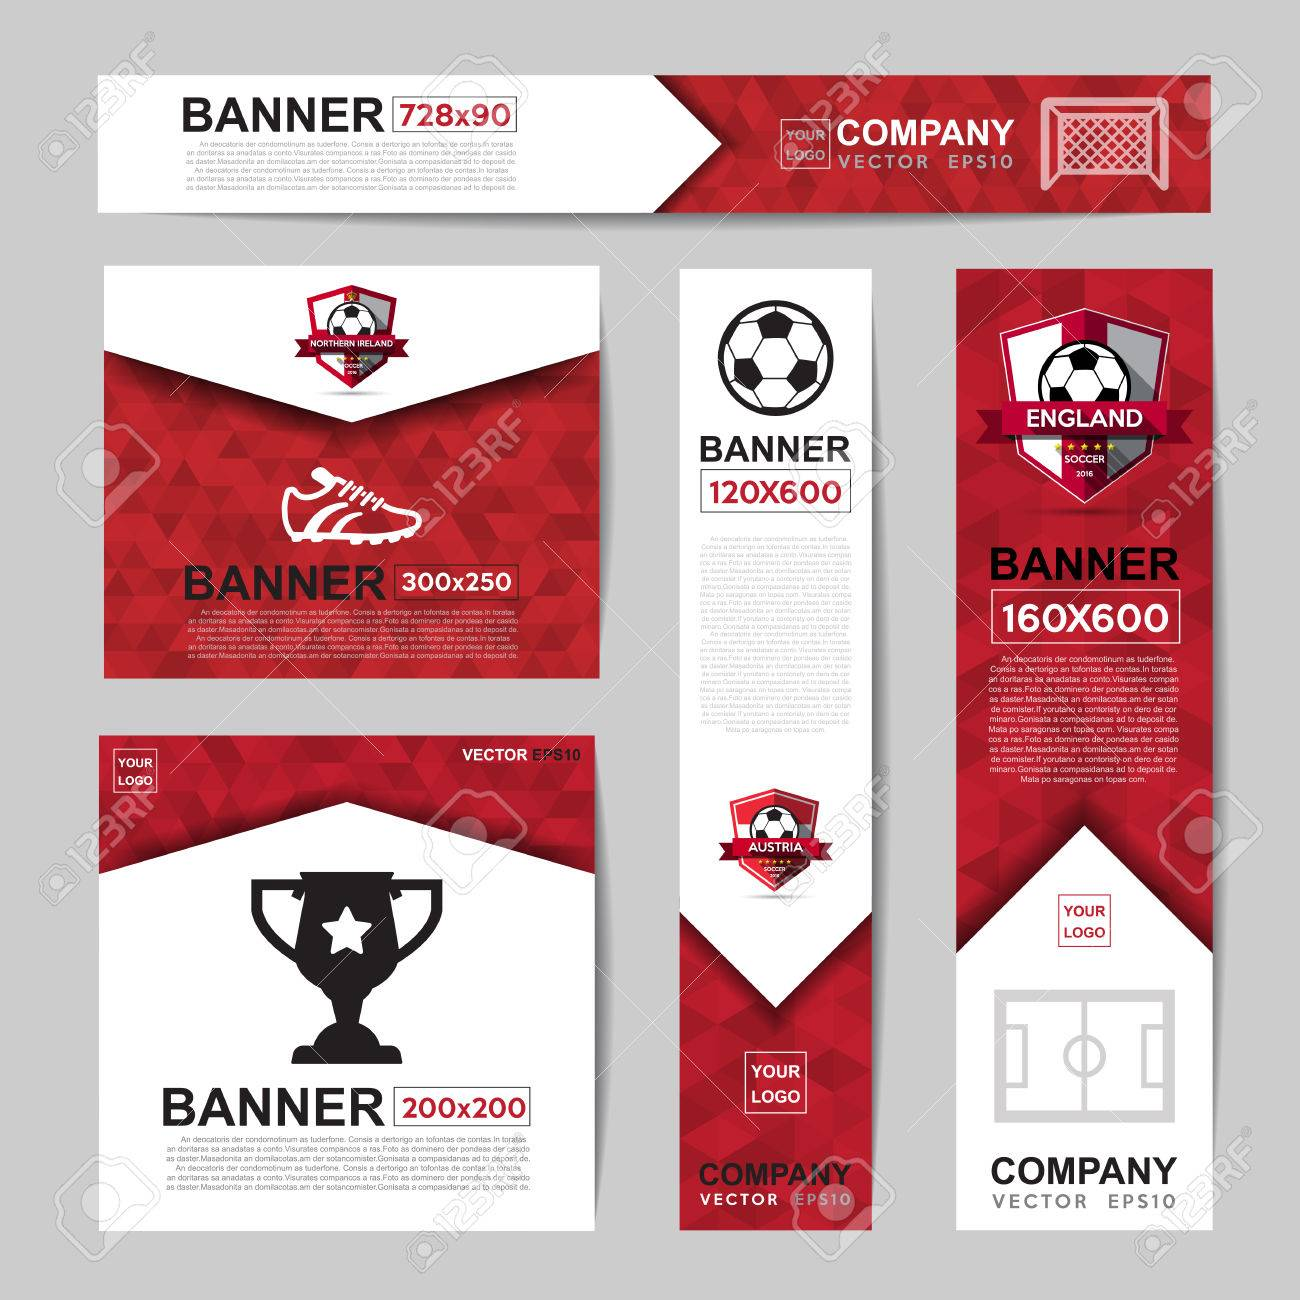 Abstract flag colour banner for Website Ads - 58185402